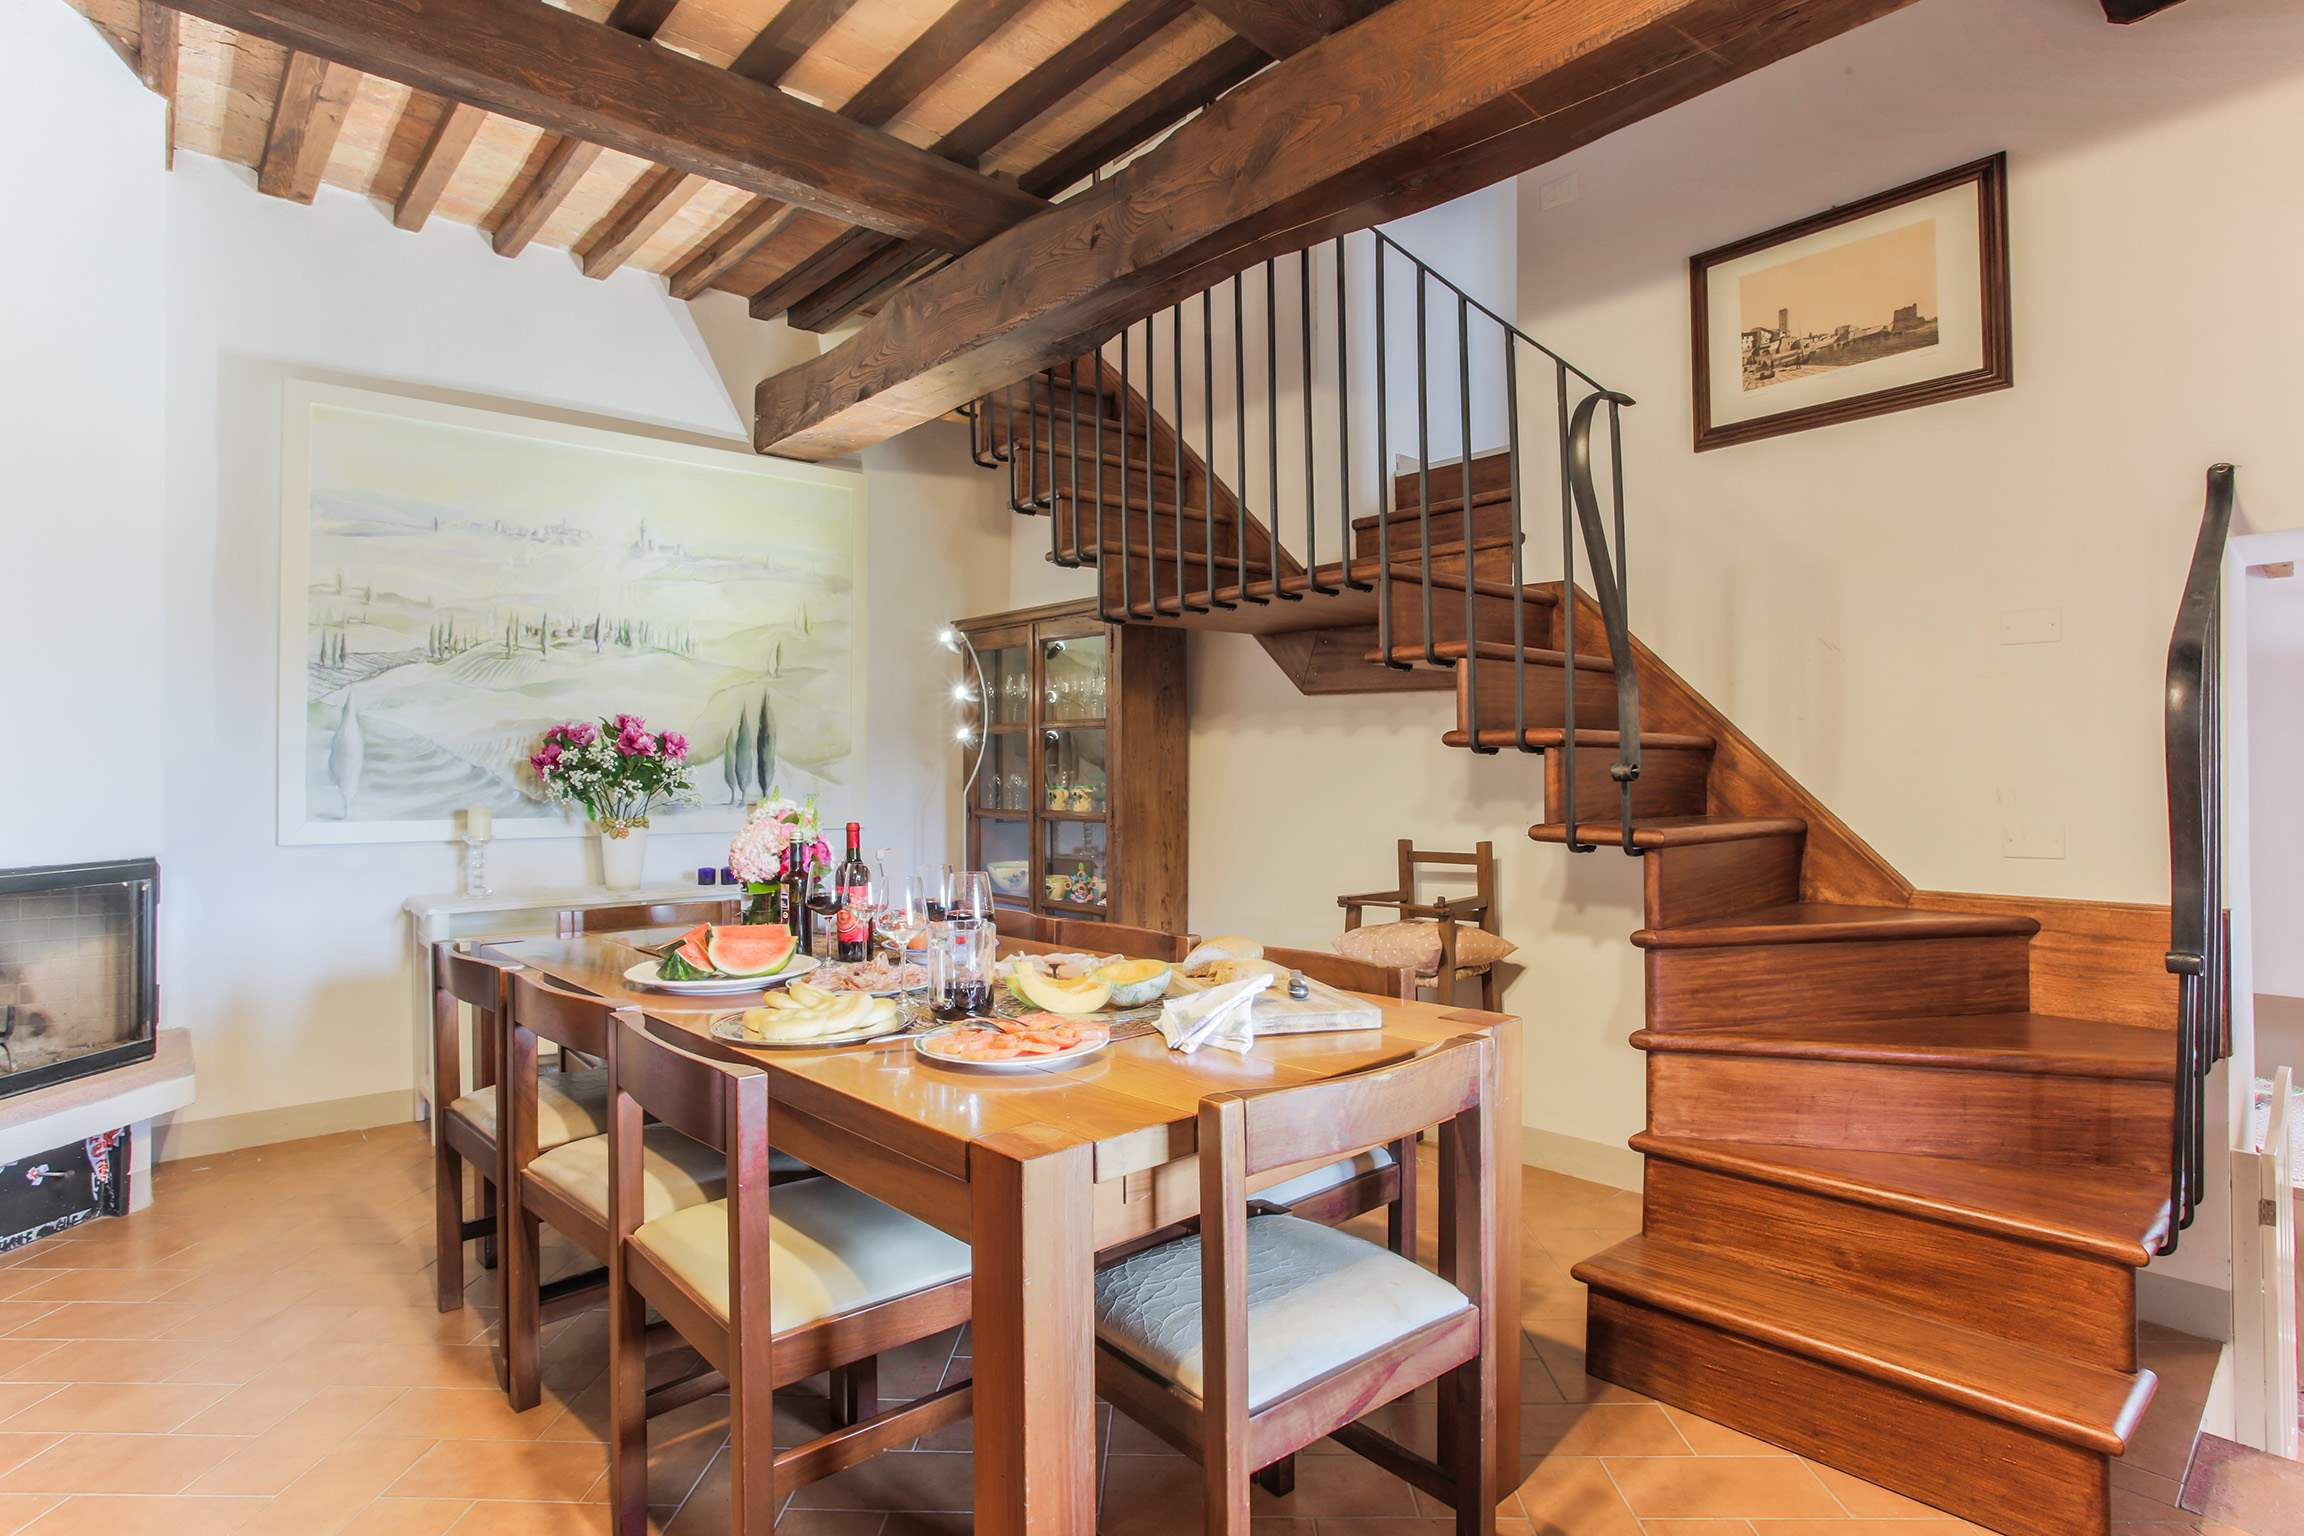 Casa Di Dante, 3 bedroom villa in North Tuscany - Pisa & Lucca Area, Tuscany Photo #10